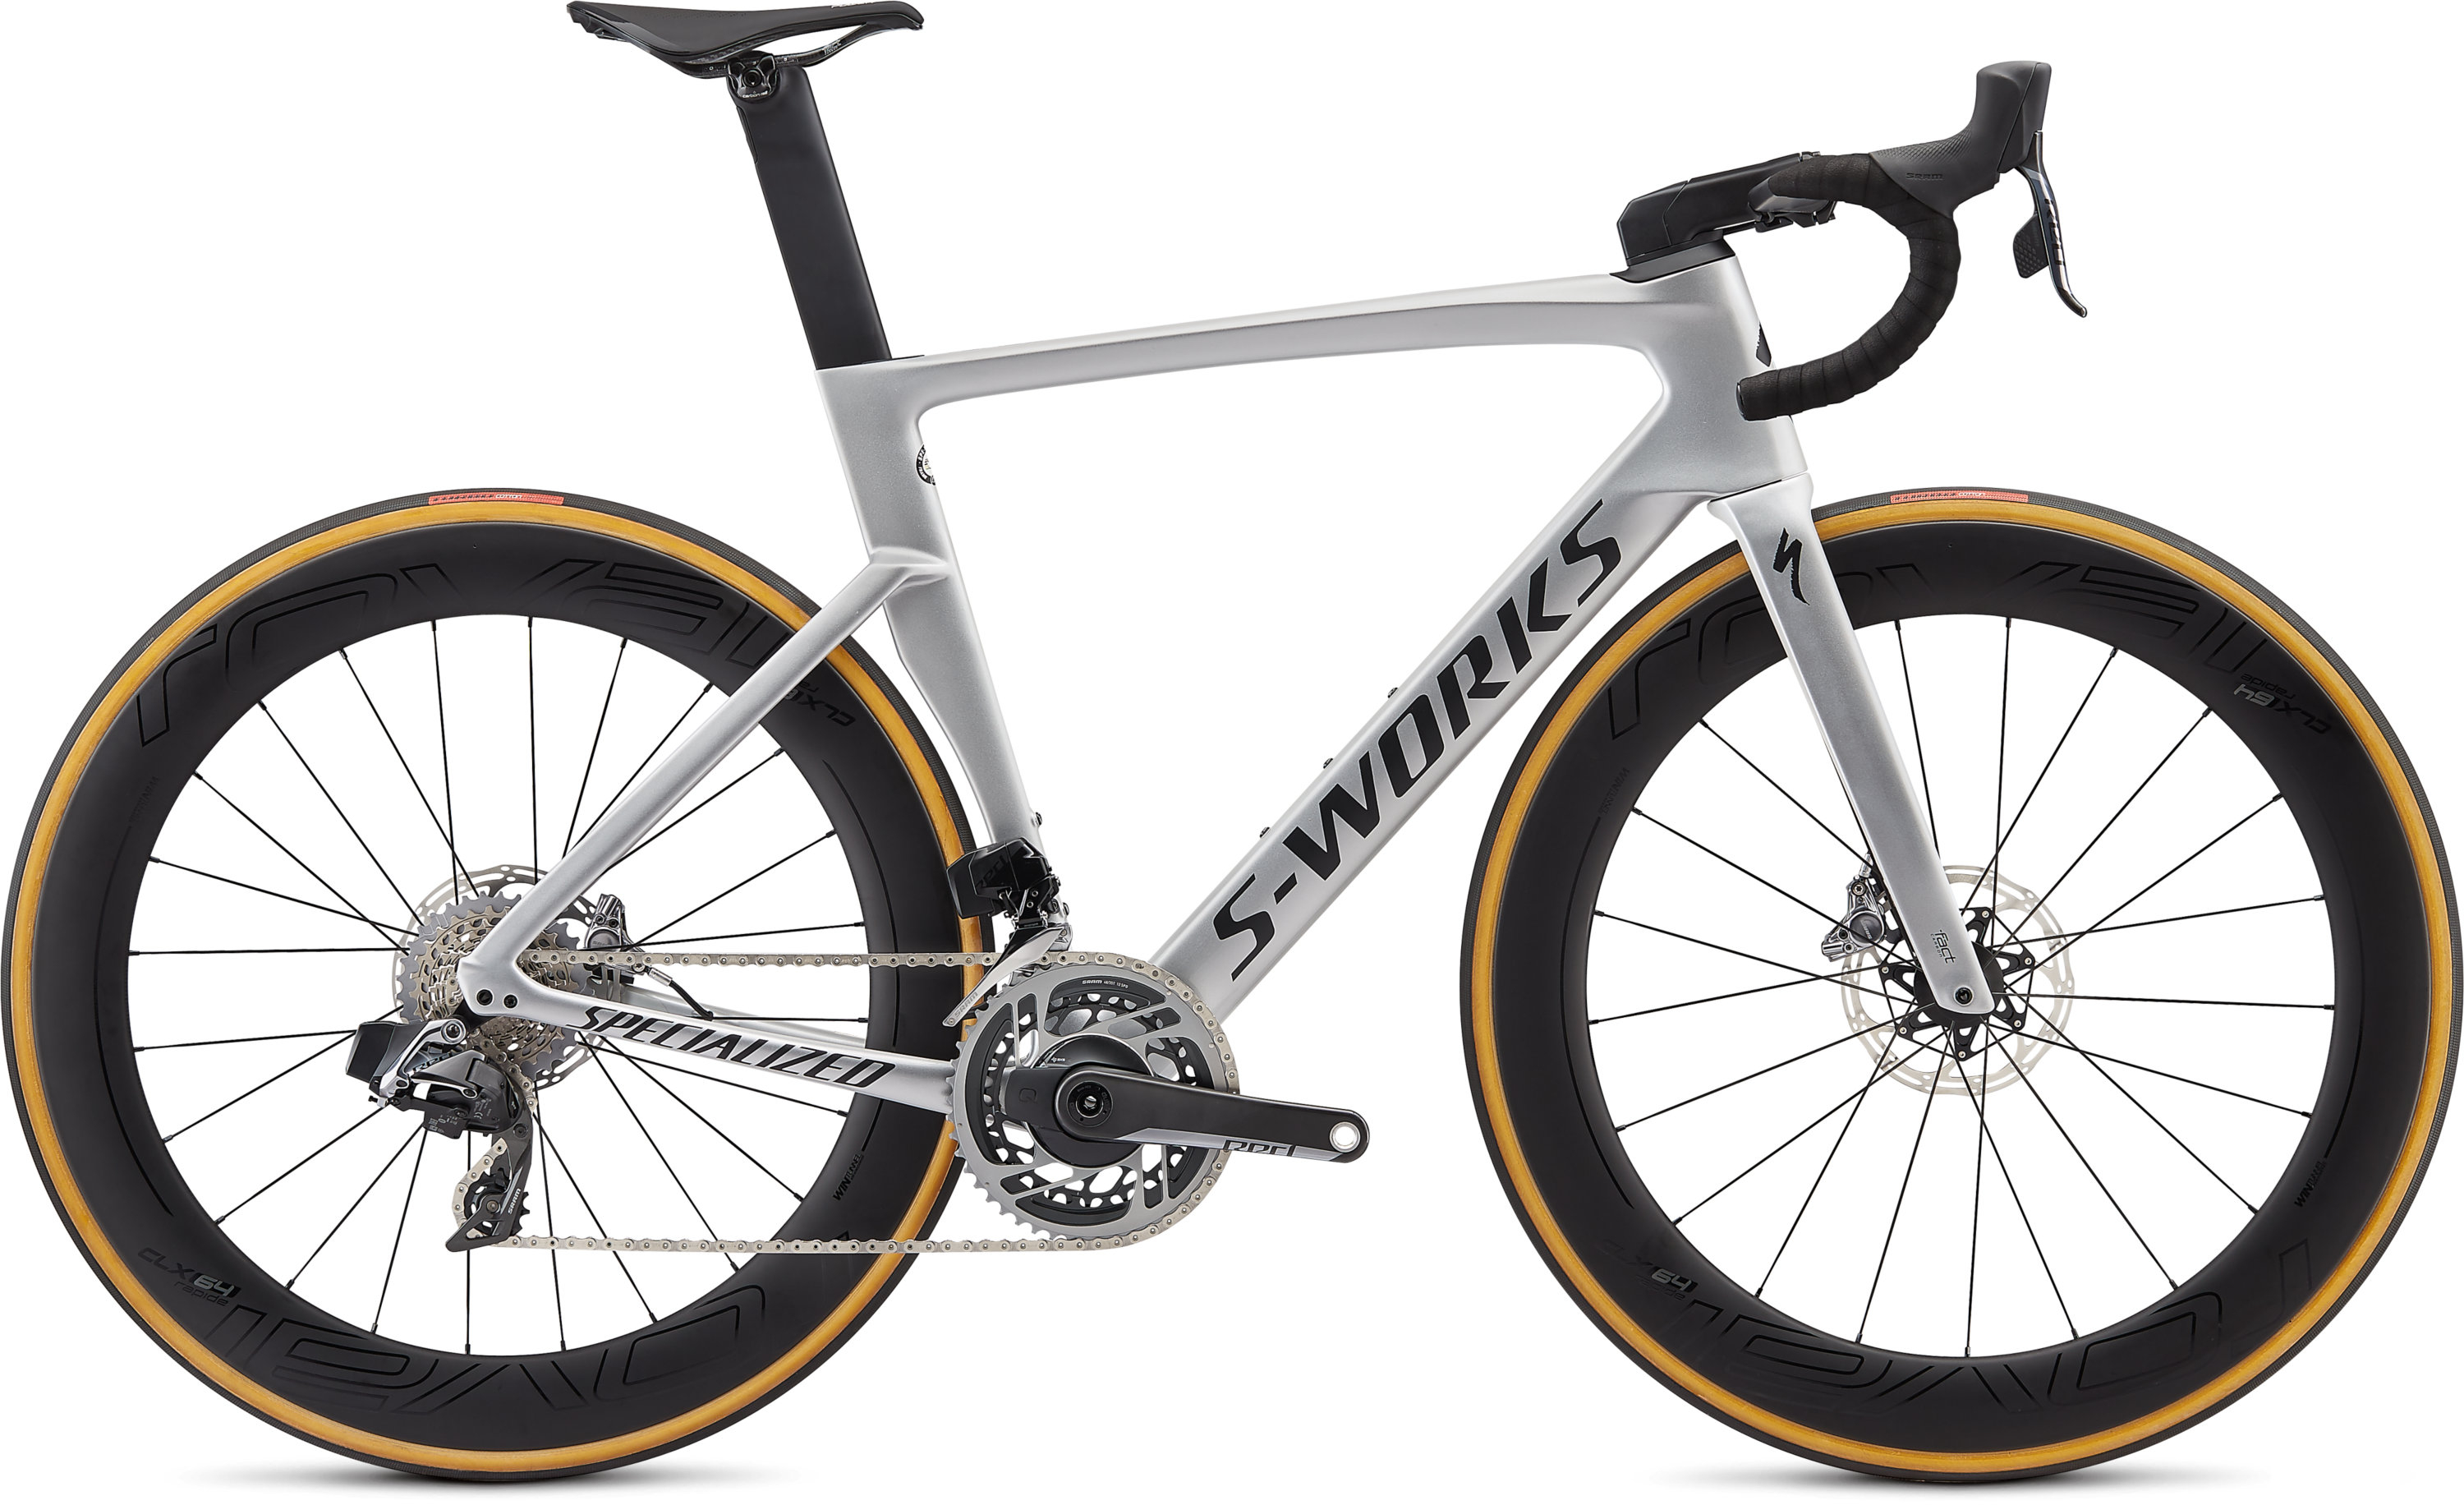 2019 Specialized S Works Venge Disc Sram Etap